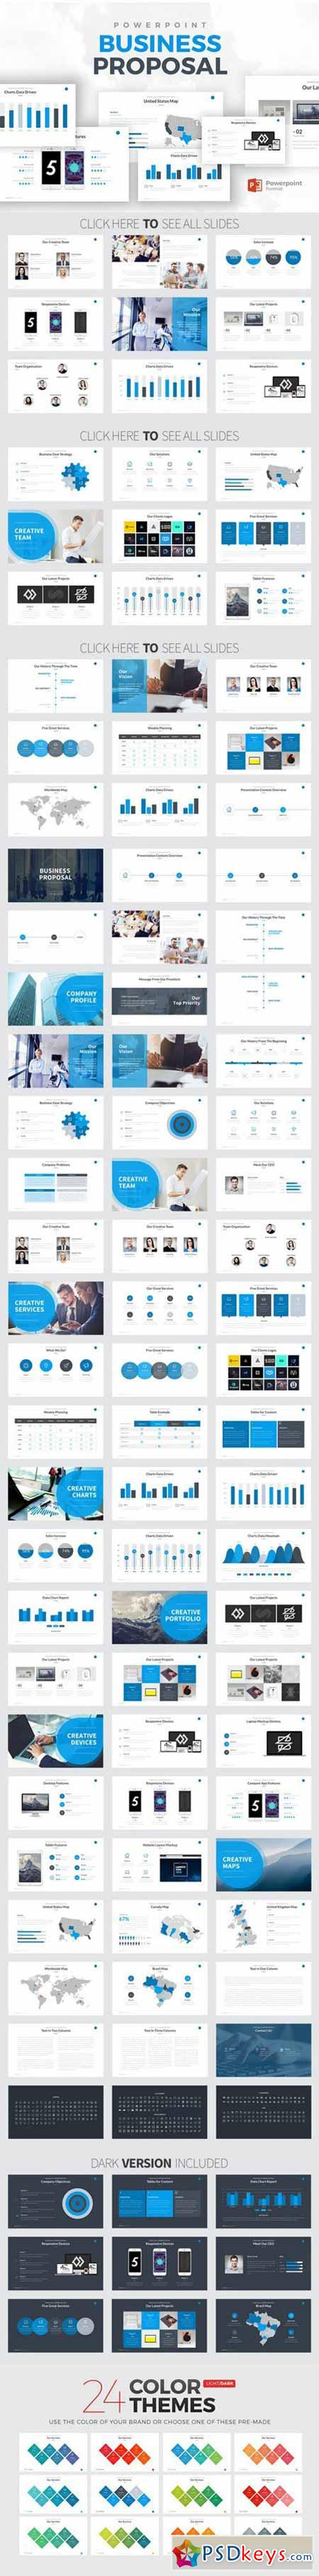 Business Proposal PowerPoint 575444